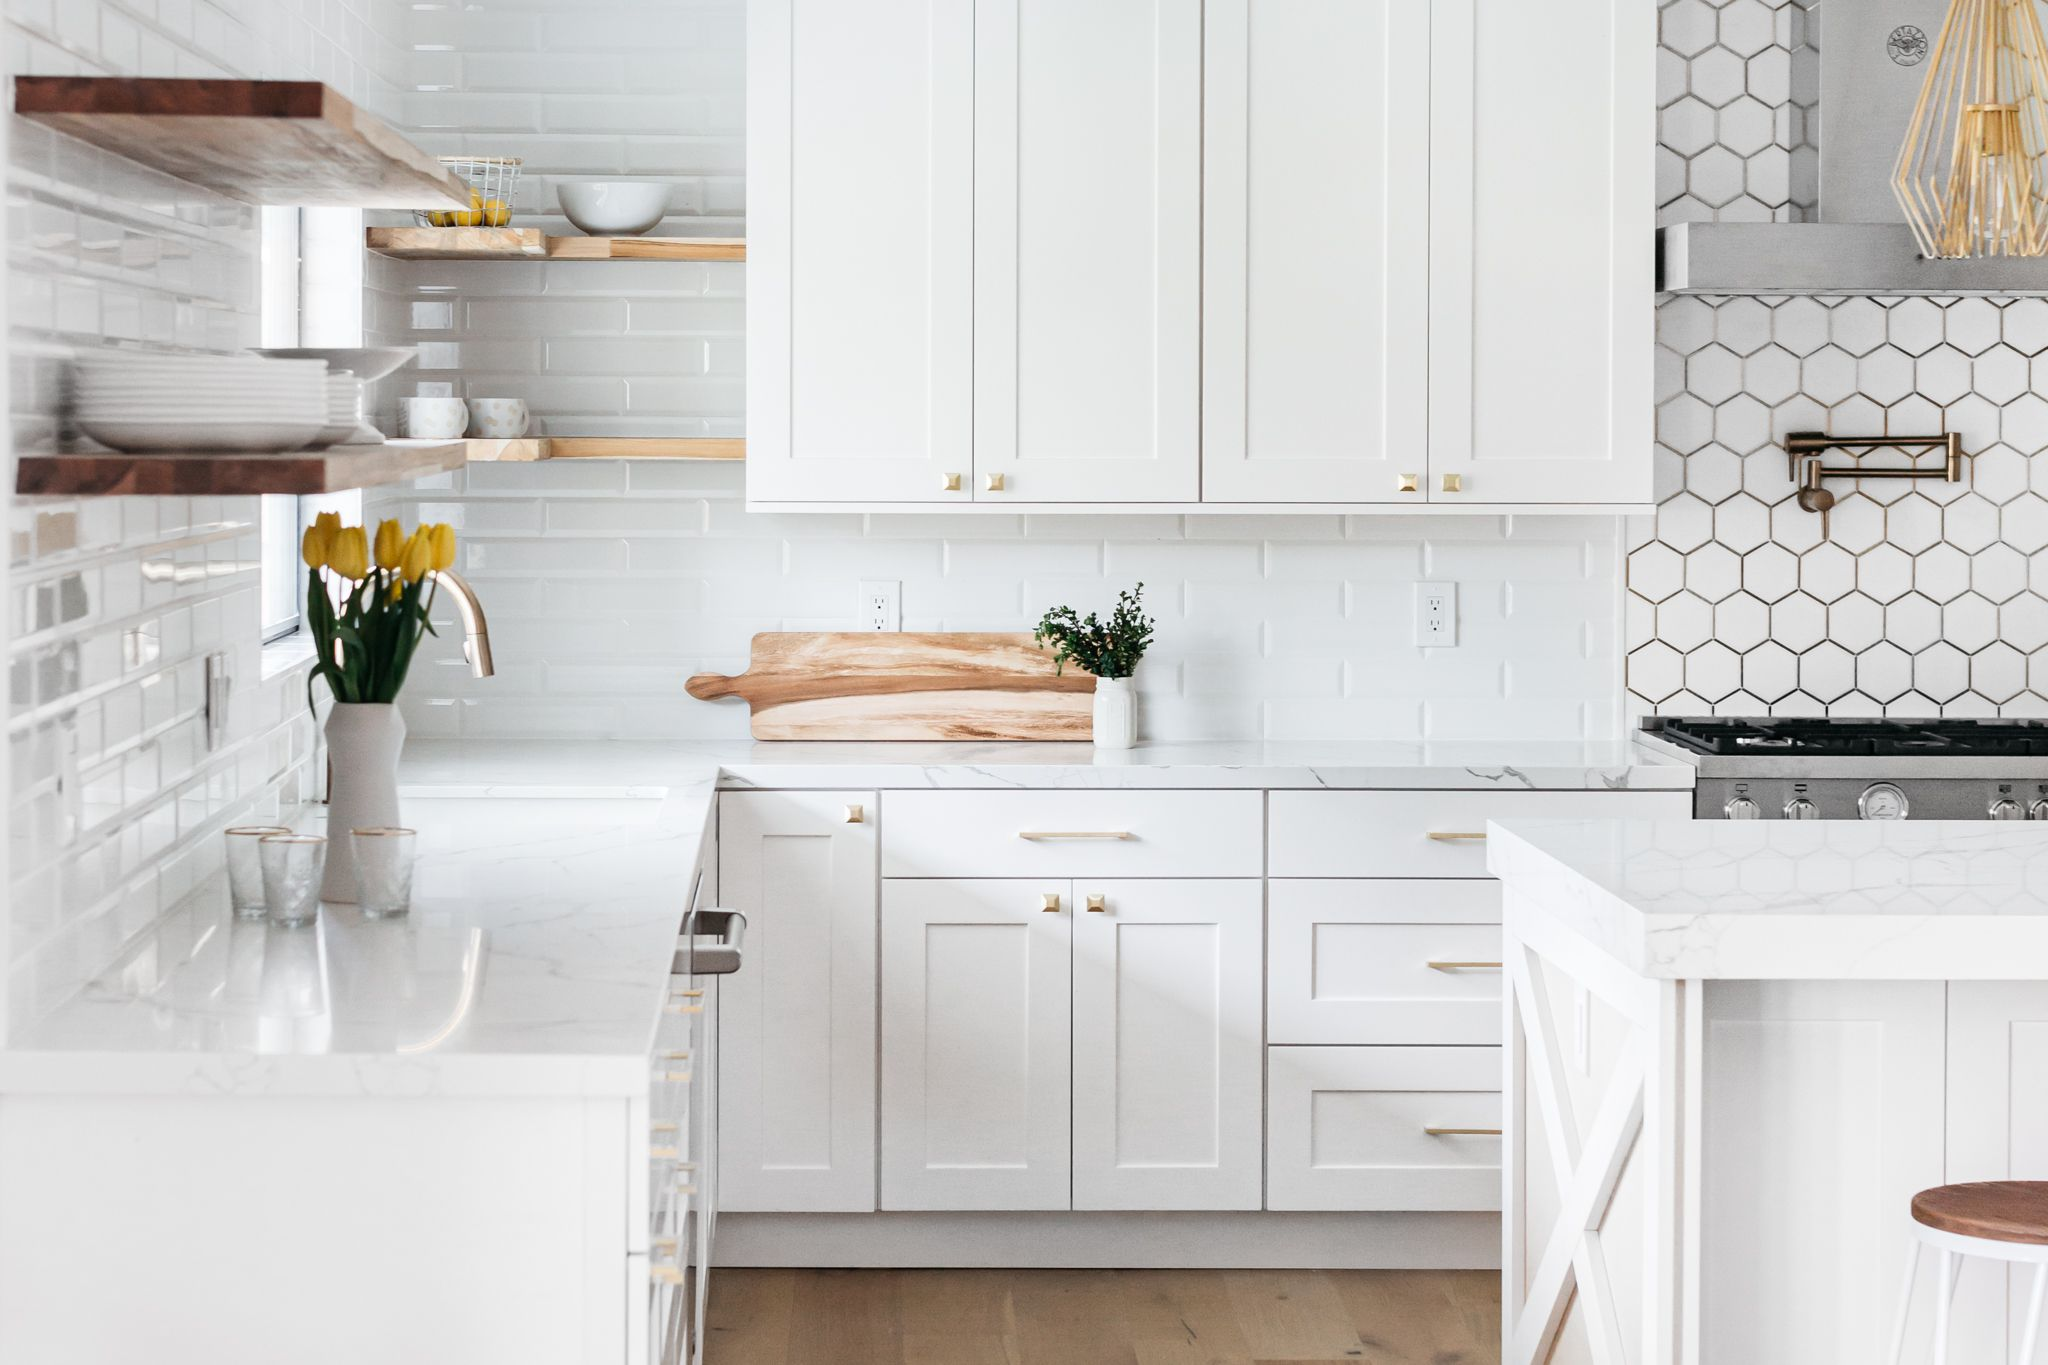 Average Height Of Kitchen Cabinets Guide to Standard Kitchen CabiDimensions